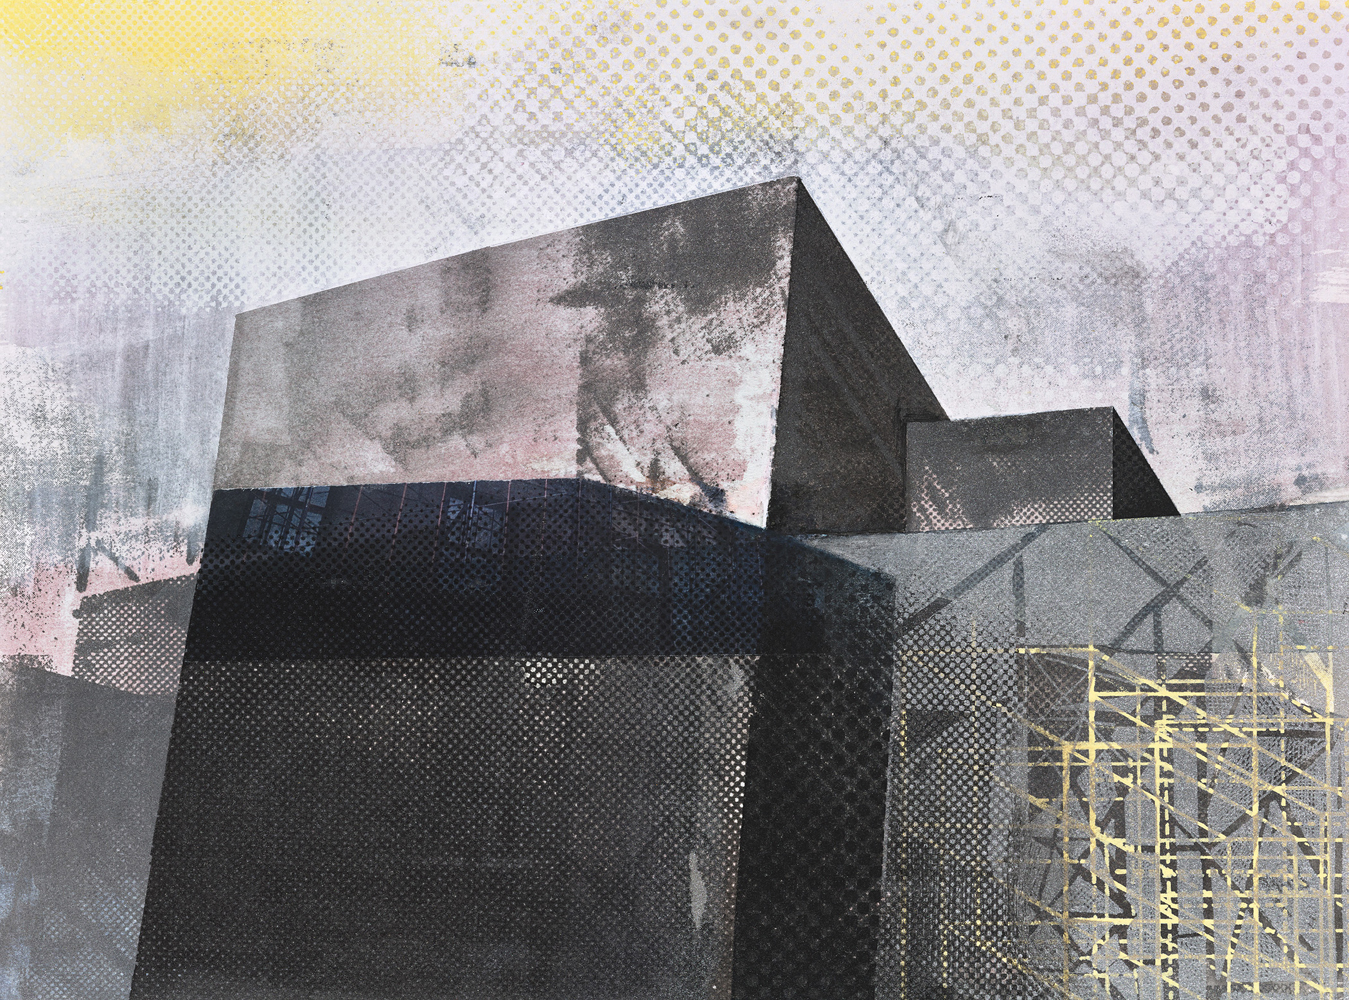 Amanda Knowles, Street View III, 2020, screen print, graphite, acrylic on paper, 11 x 15 inches, $600.